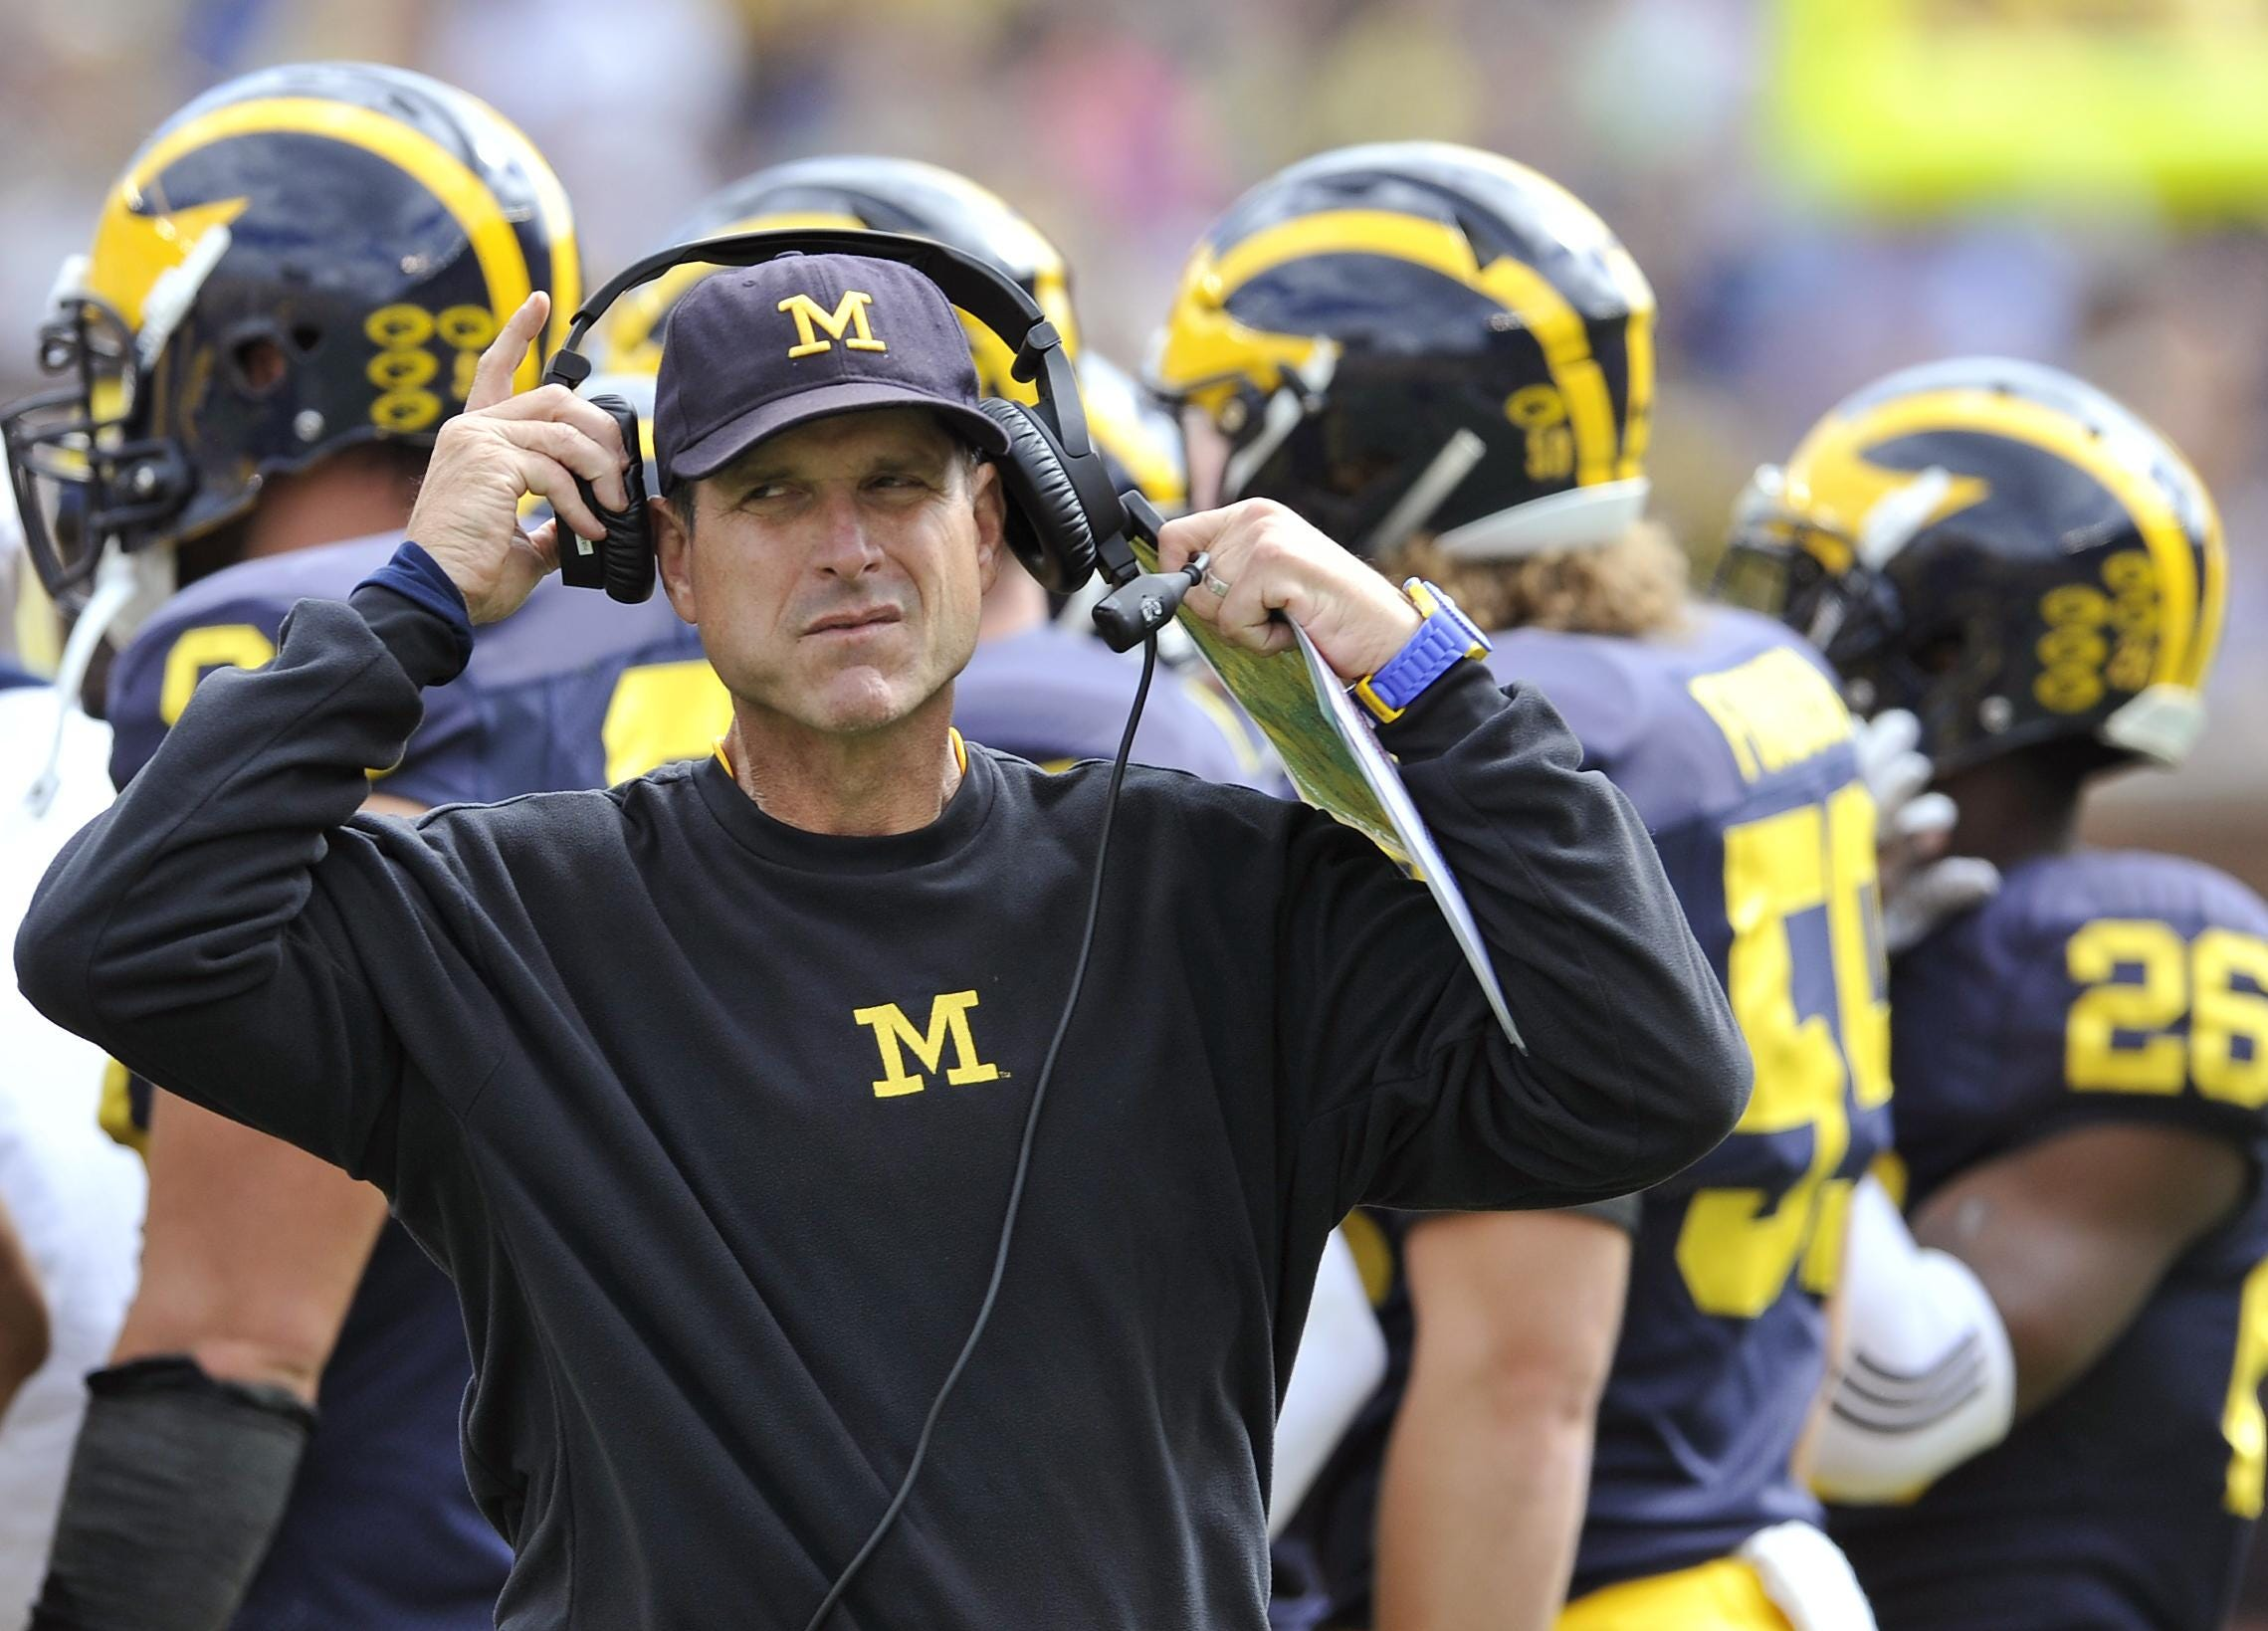 sc 1 st  Detroit News & Harbaugh: Two Halloween costumes better than one